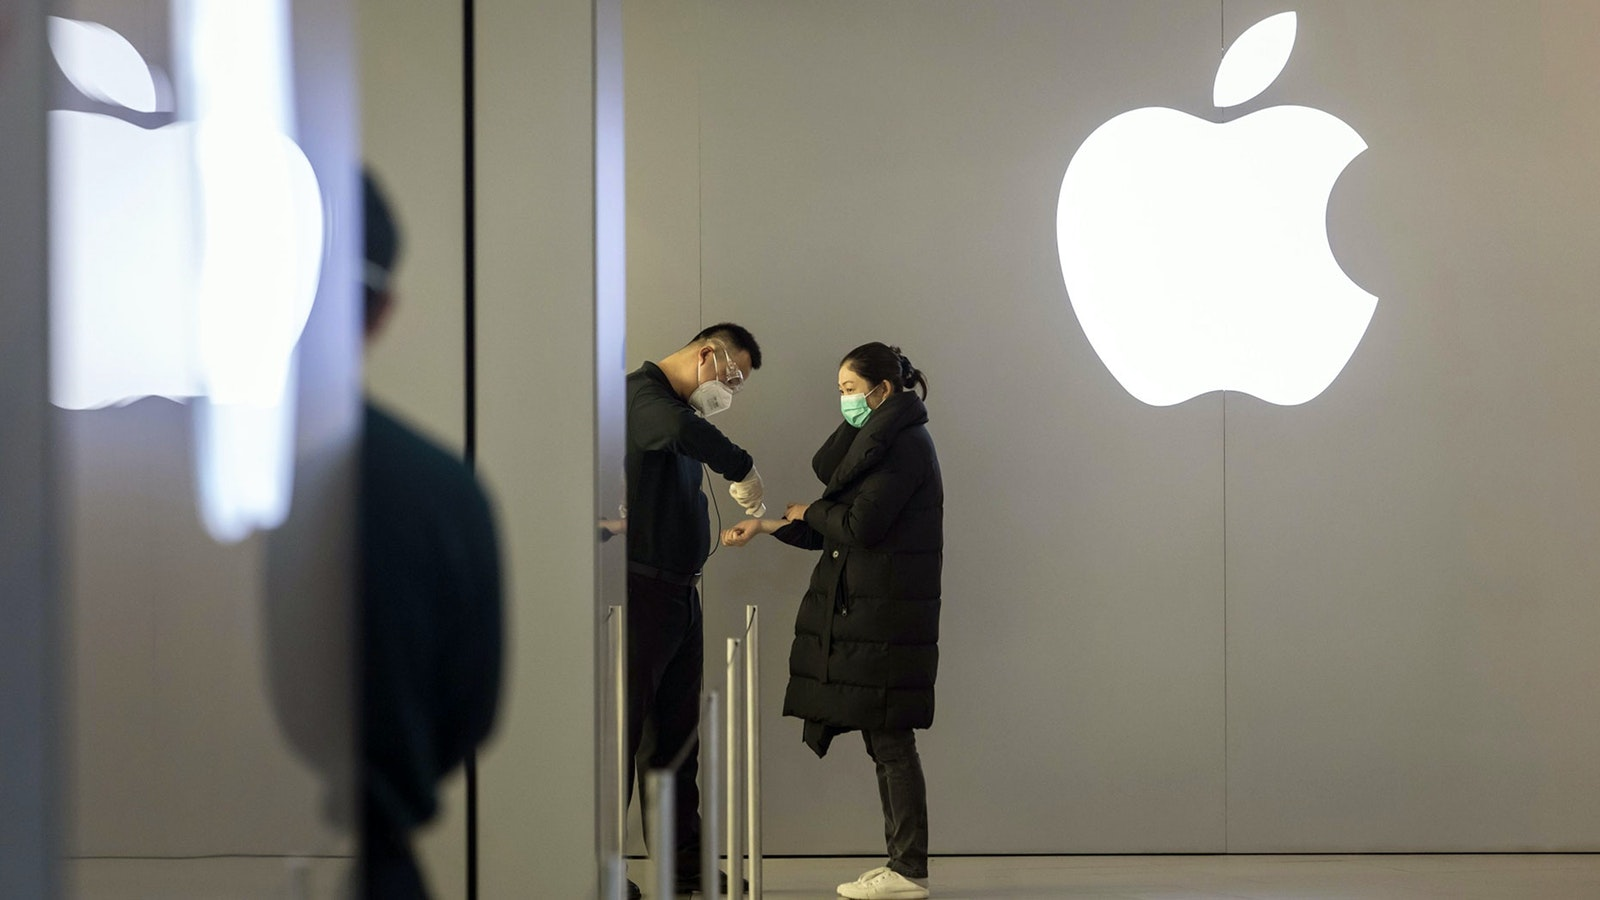 An employee wearing a protective mask takes the temperature of a customer at an entrance to an Apple store in Shanghai, China. Photo by Bloomberg.